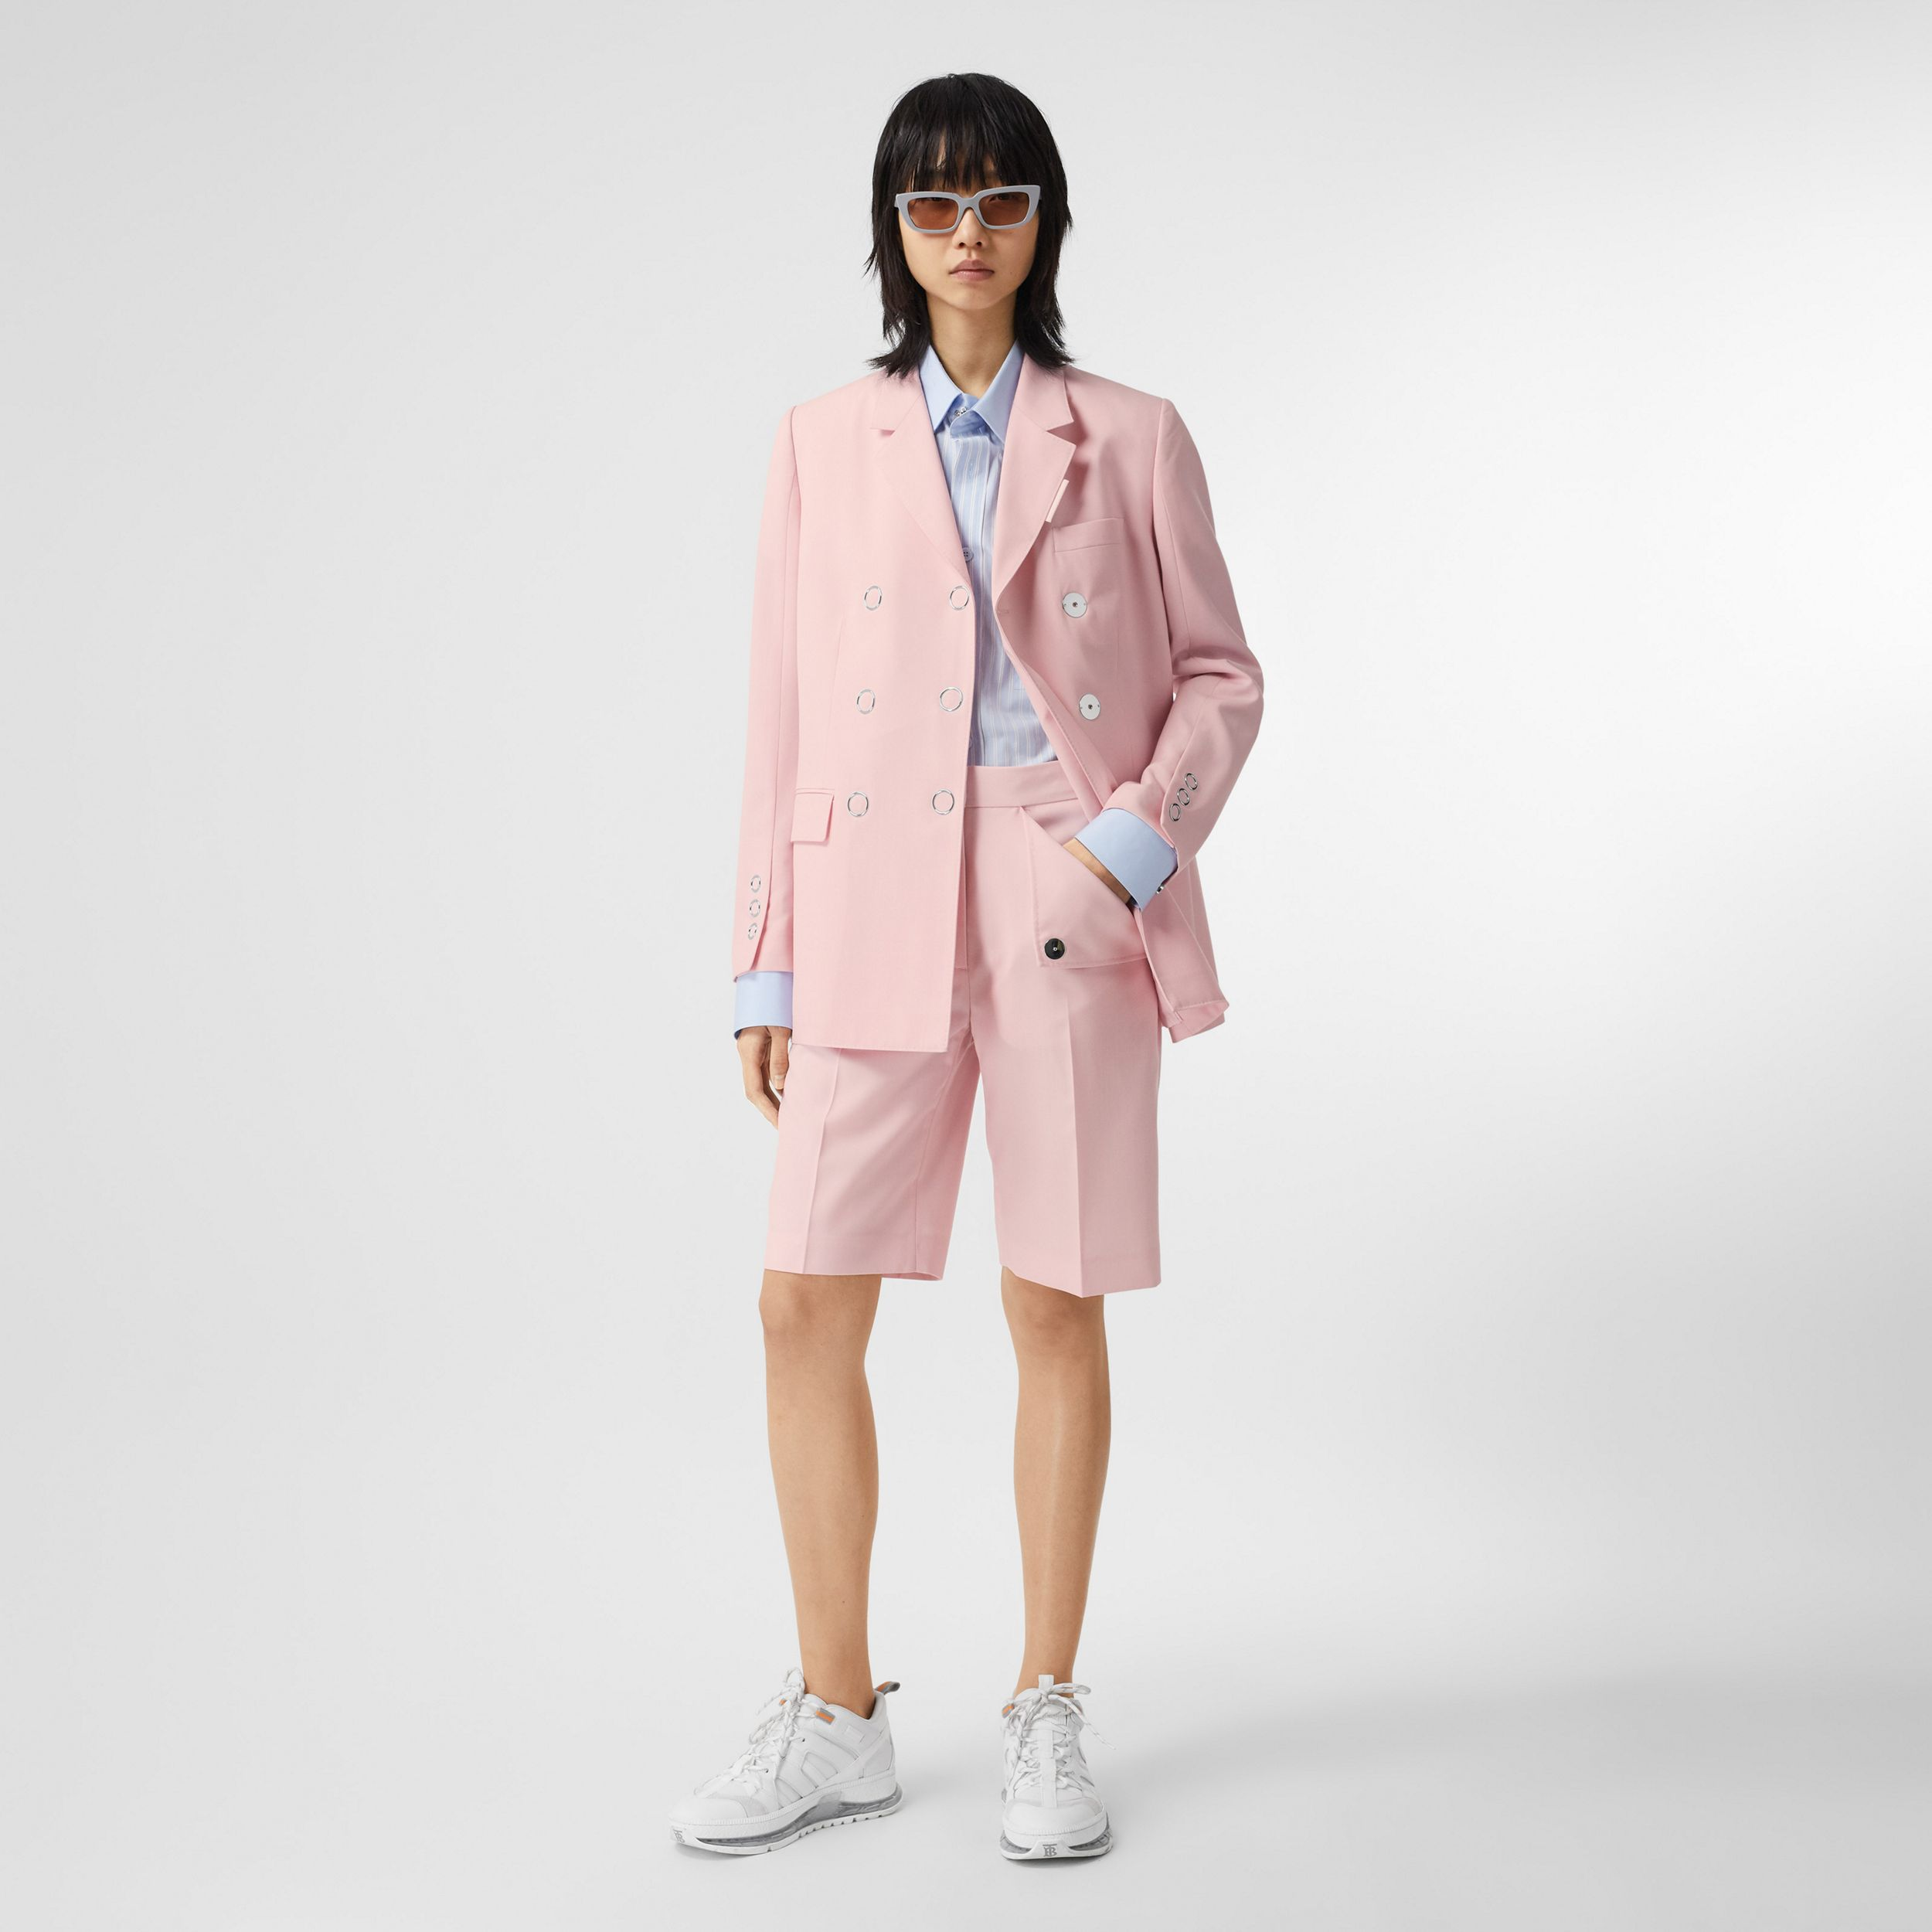 Tumbled Wool Double-breasted Blazer in Soft Pink - Women | Burberry Canada - 1